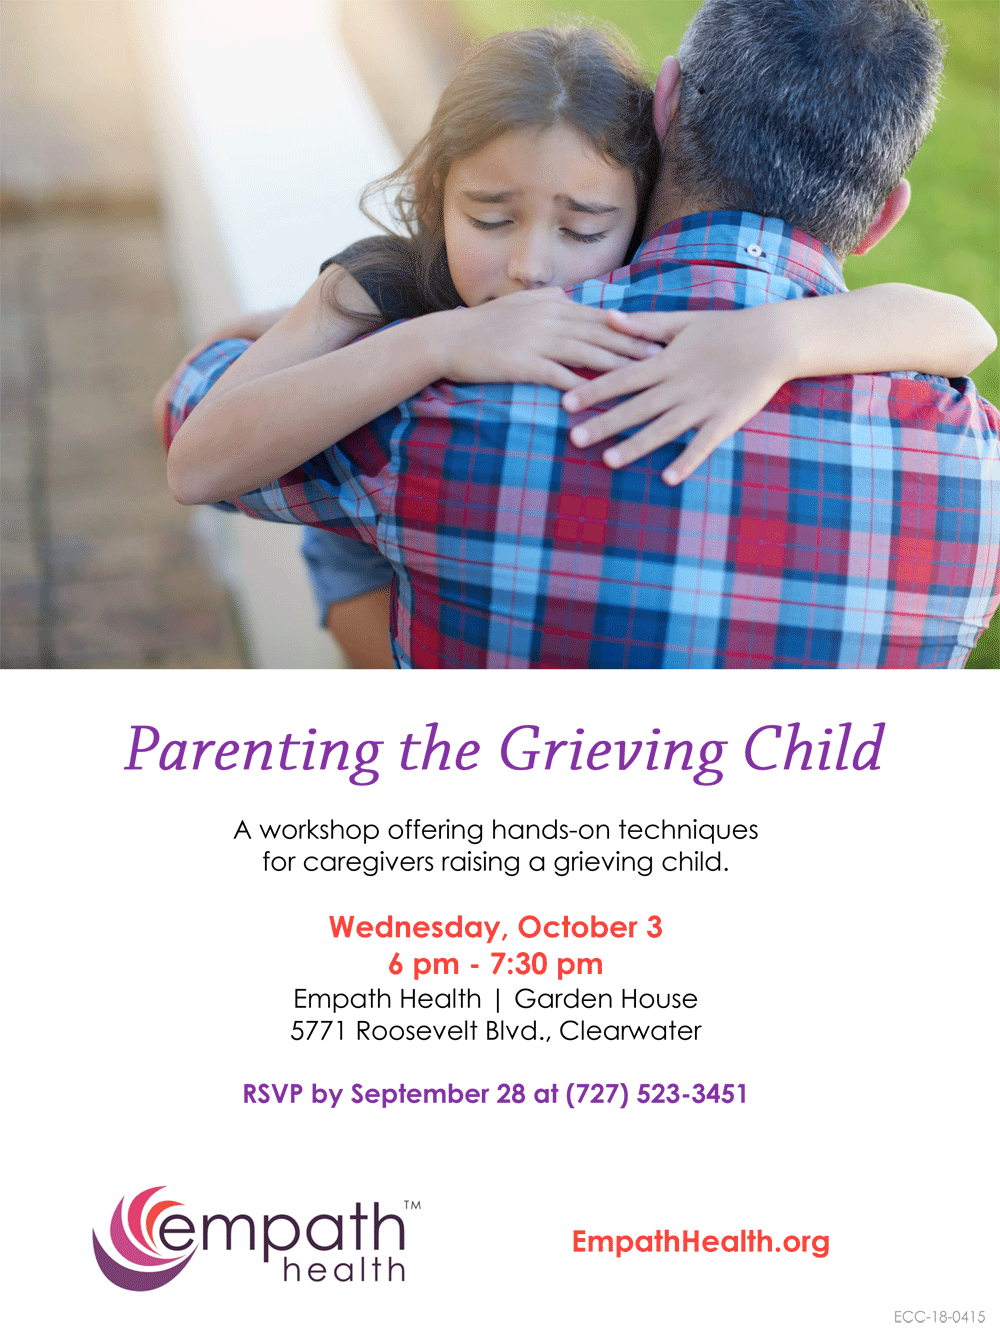 Parenting the Grieving Child @ Suncoast Hospice | Empath Health Service Center, Garden House | Clearwater | Florida | United States